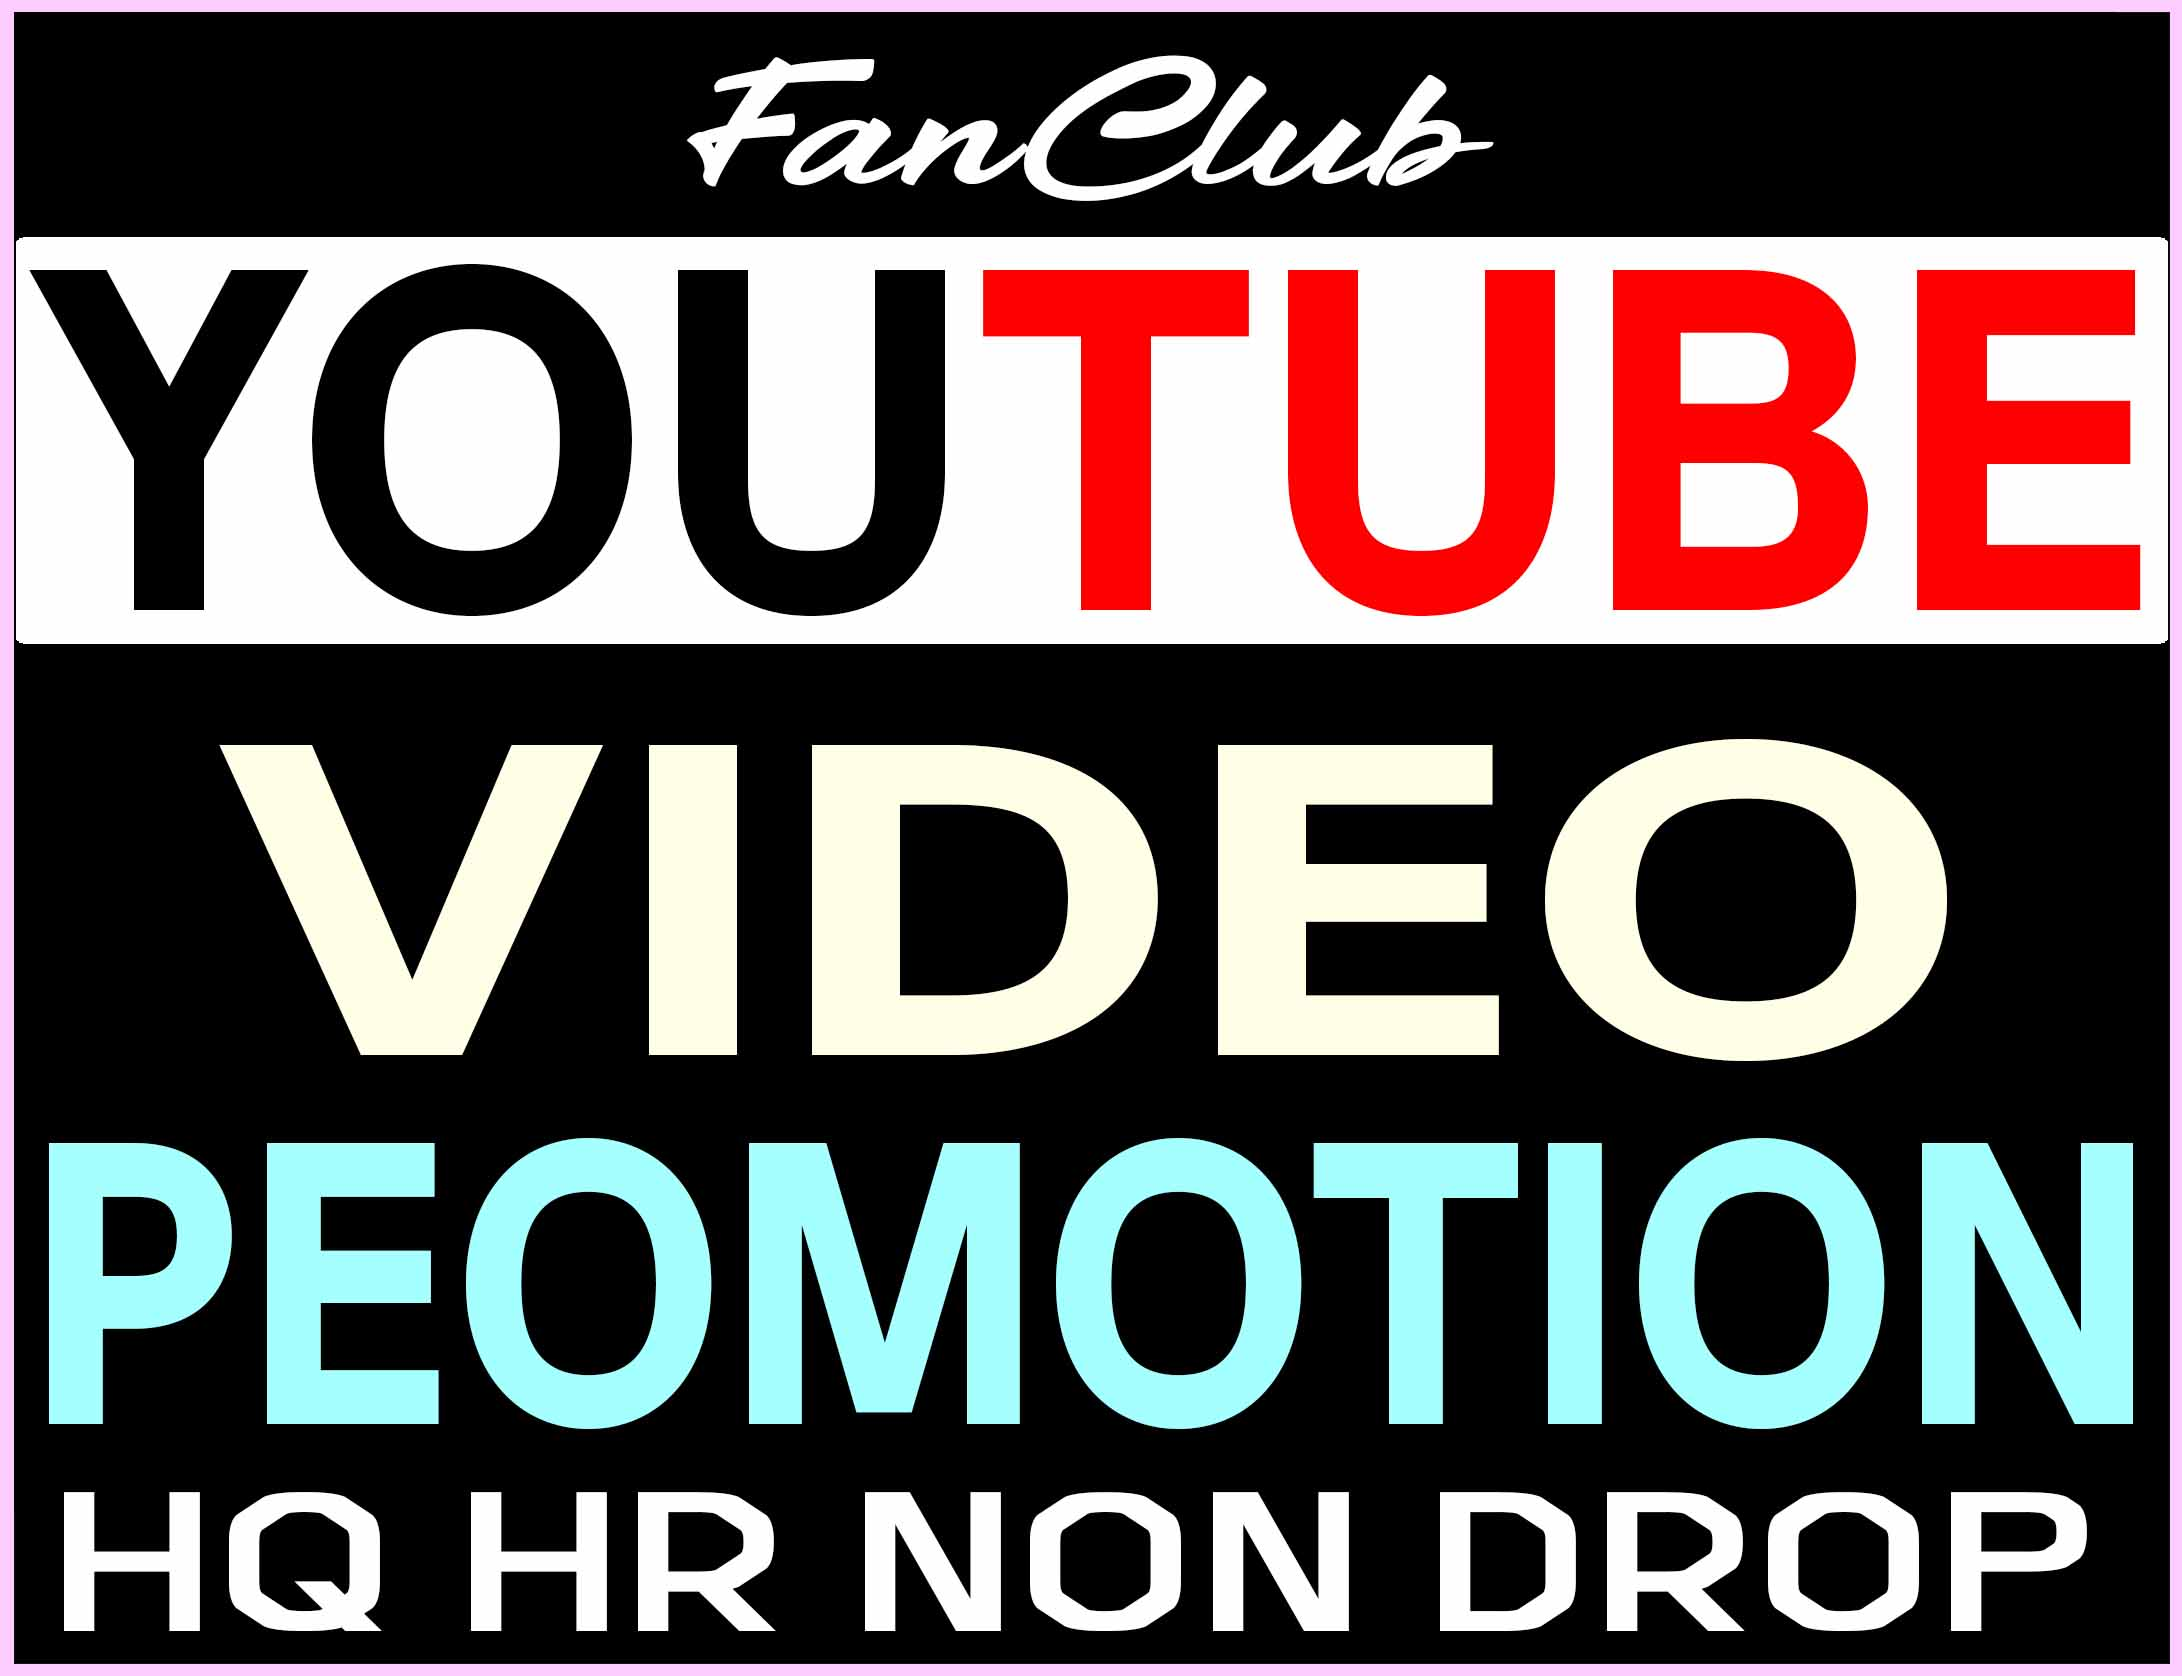 YOUTUBE VIDEO PROMOTION AND MARKETING REAL ORGANIC SUPER FAST WITH NON DROP GUARANTEED